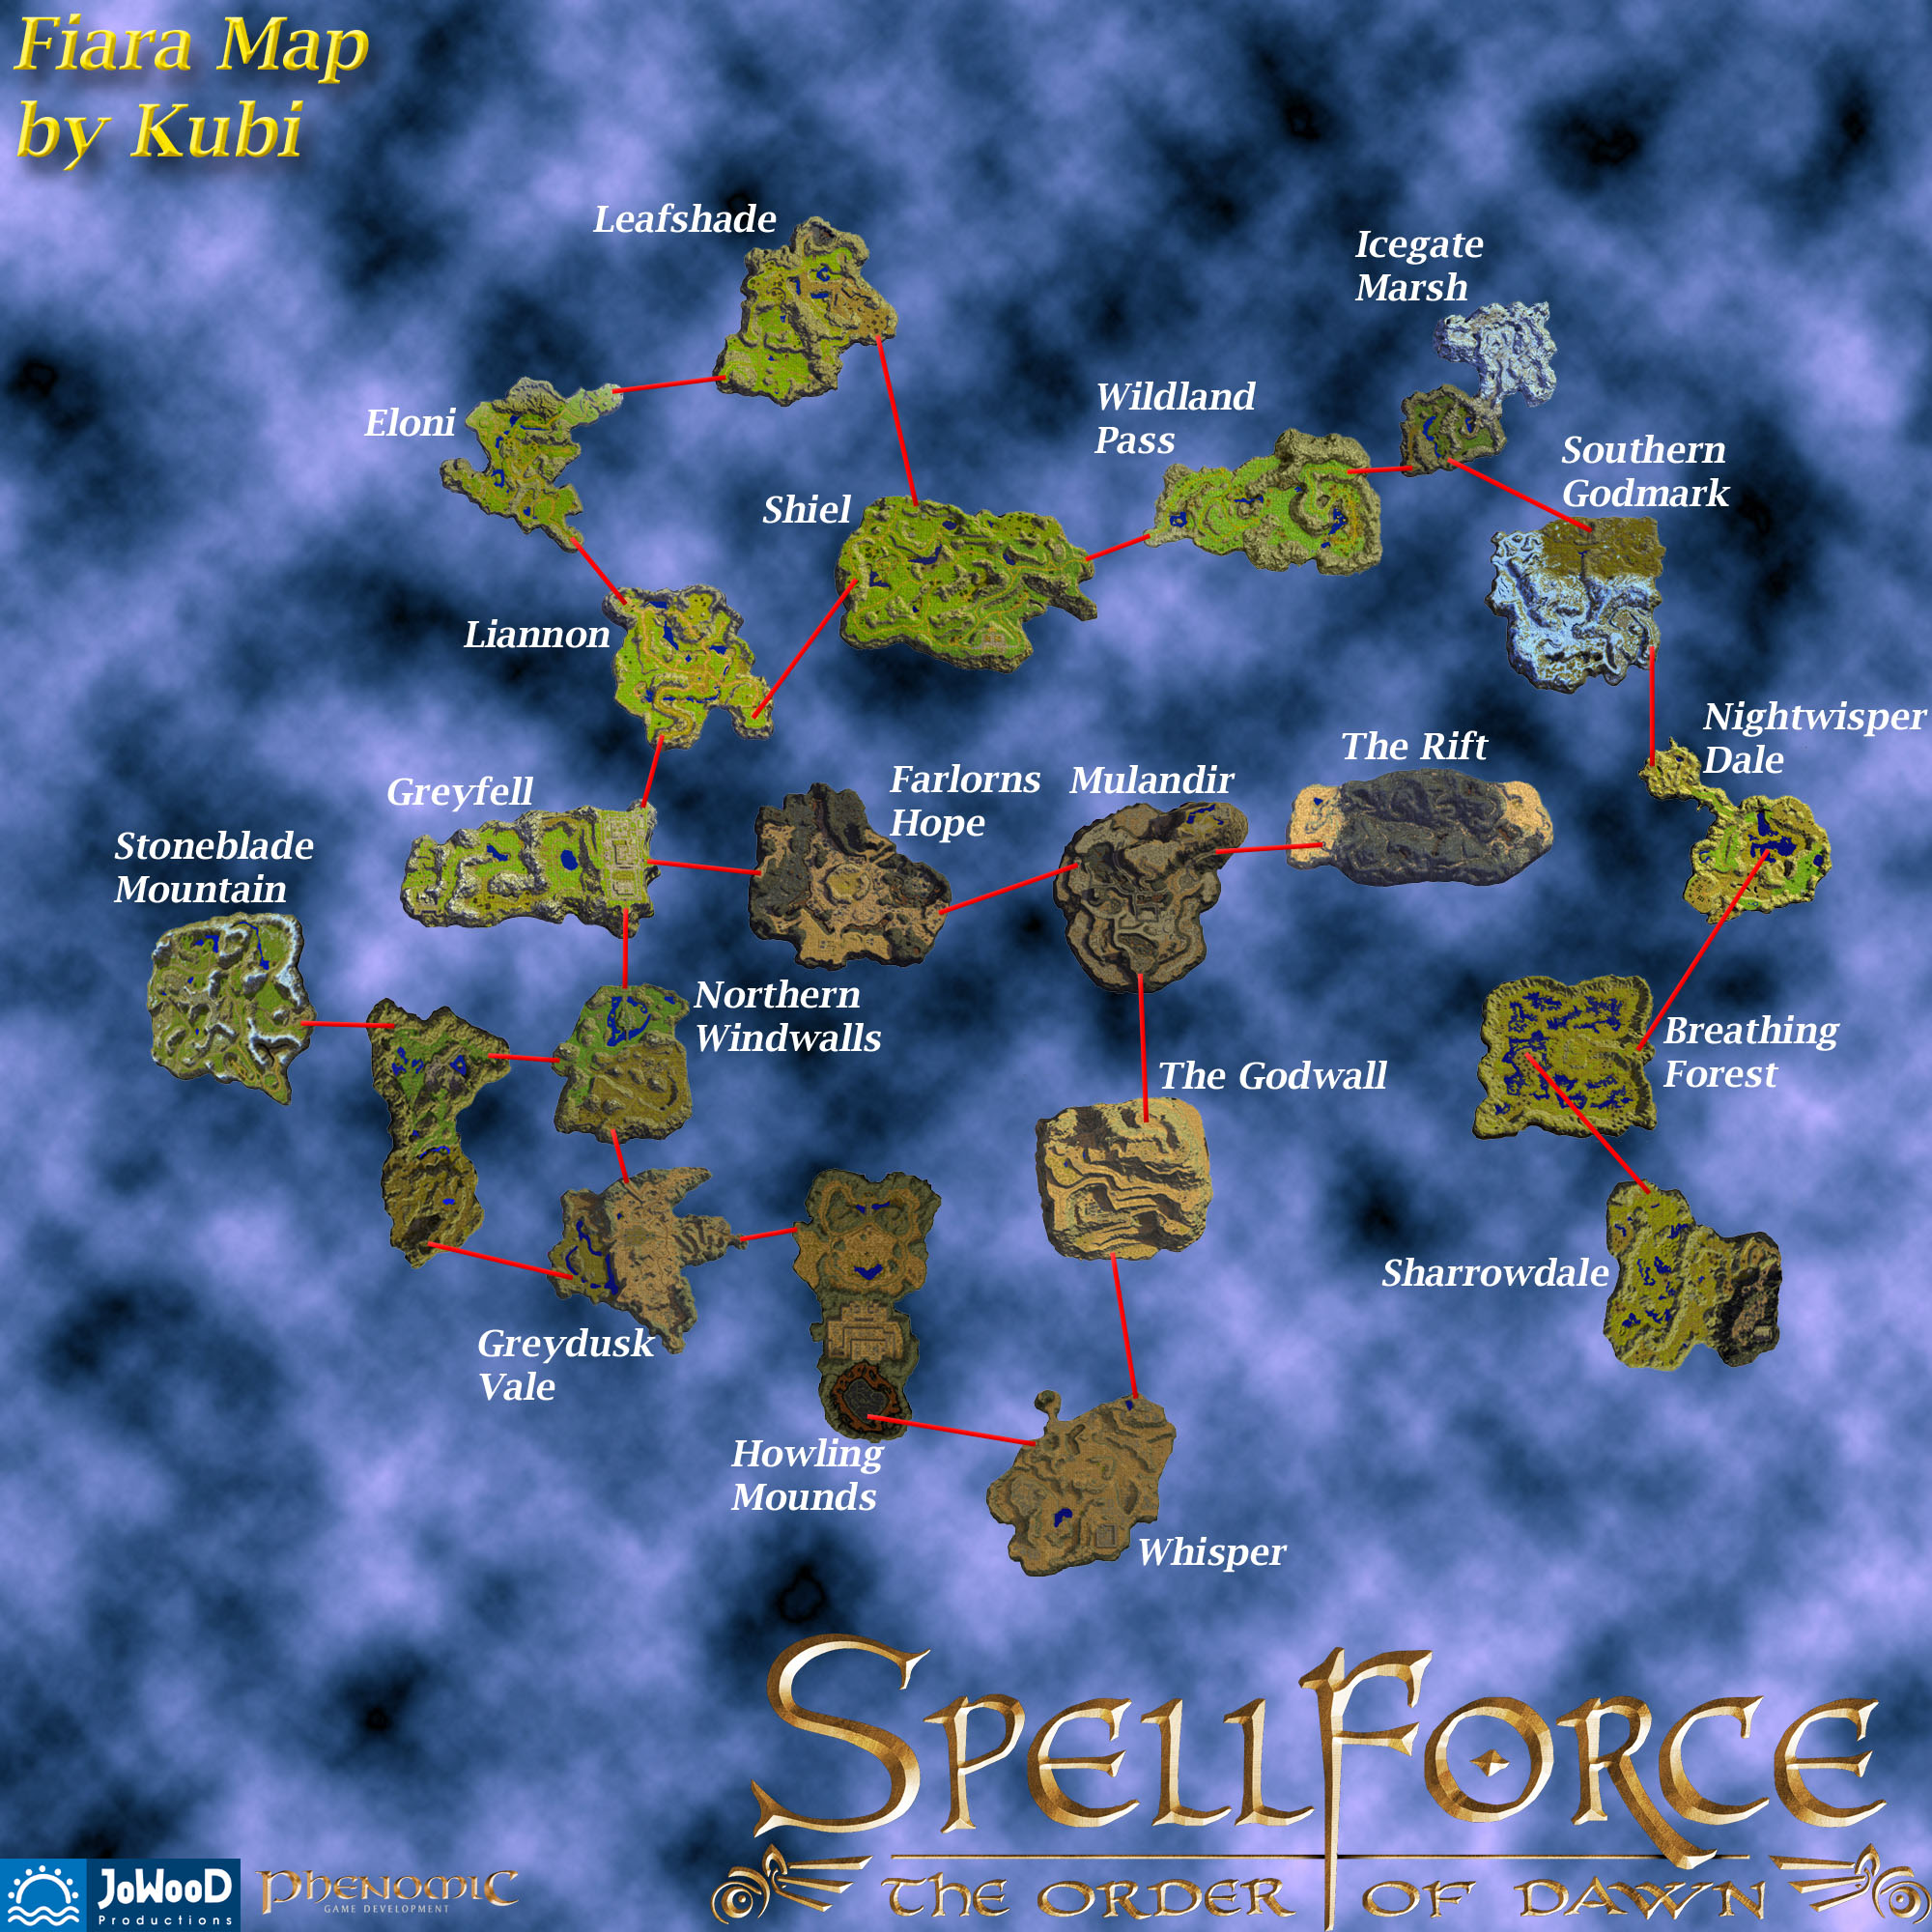 Maps | Spellforce Wiki | Fandom